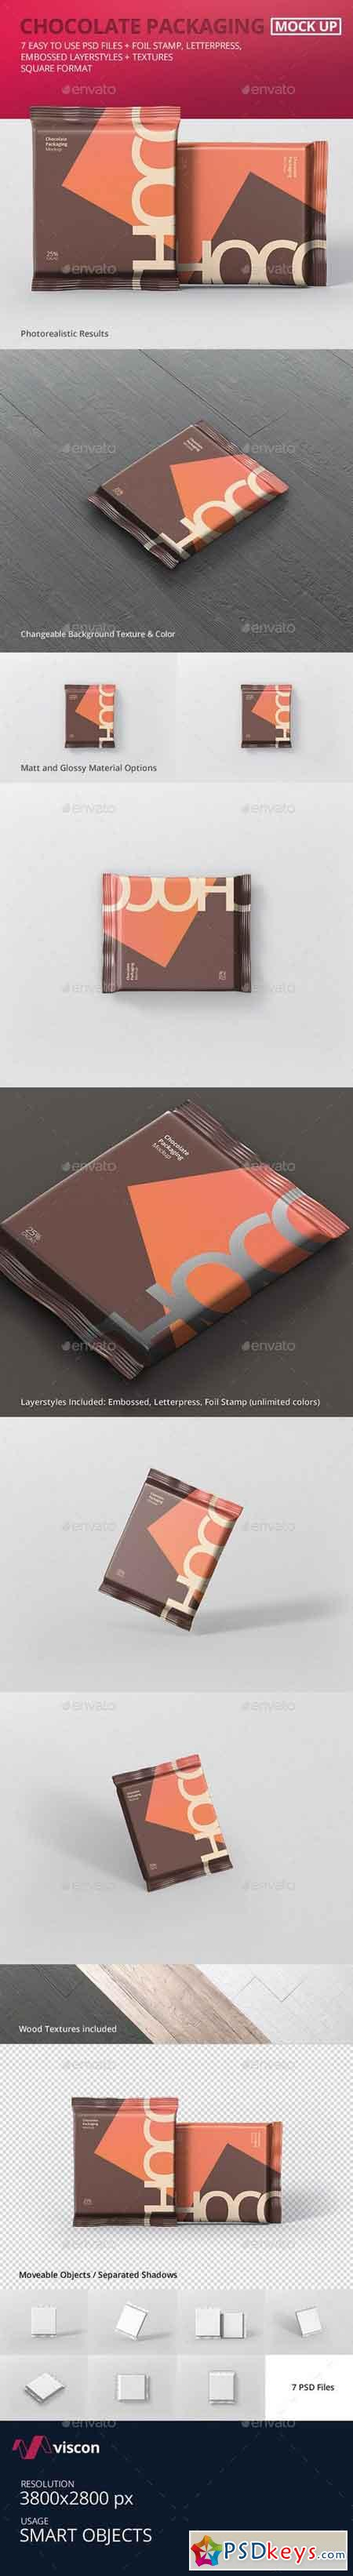 Foil Chocolate Packaging Mockup - Square Size 21180593